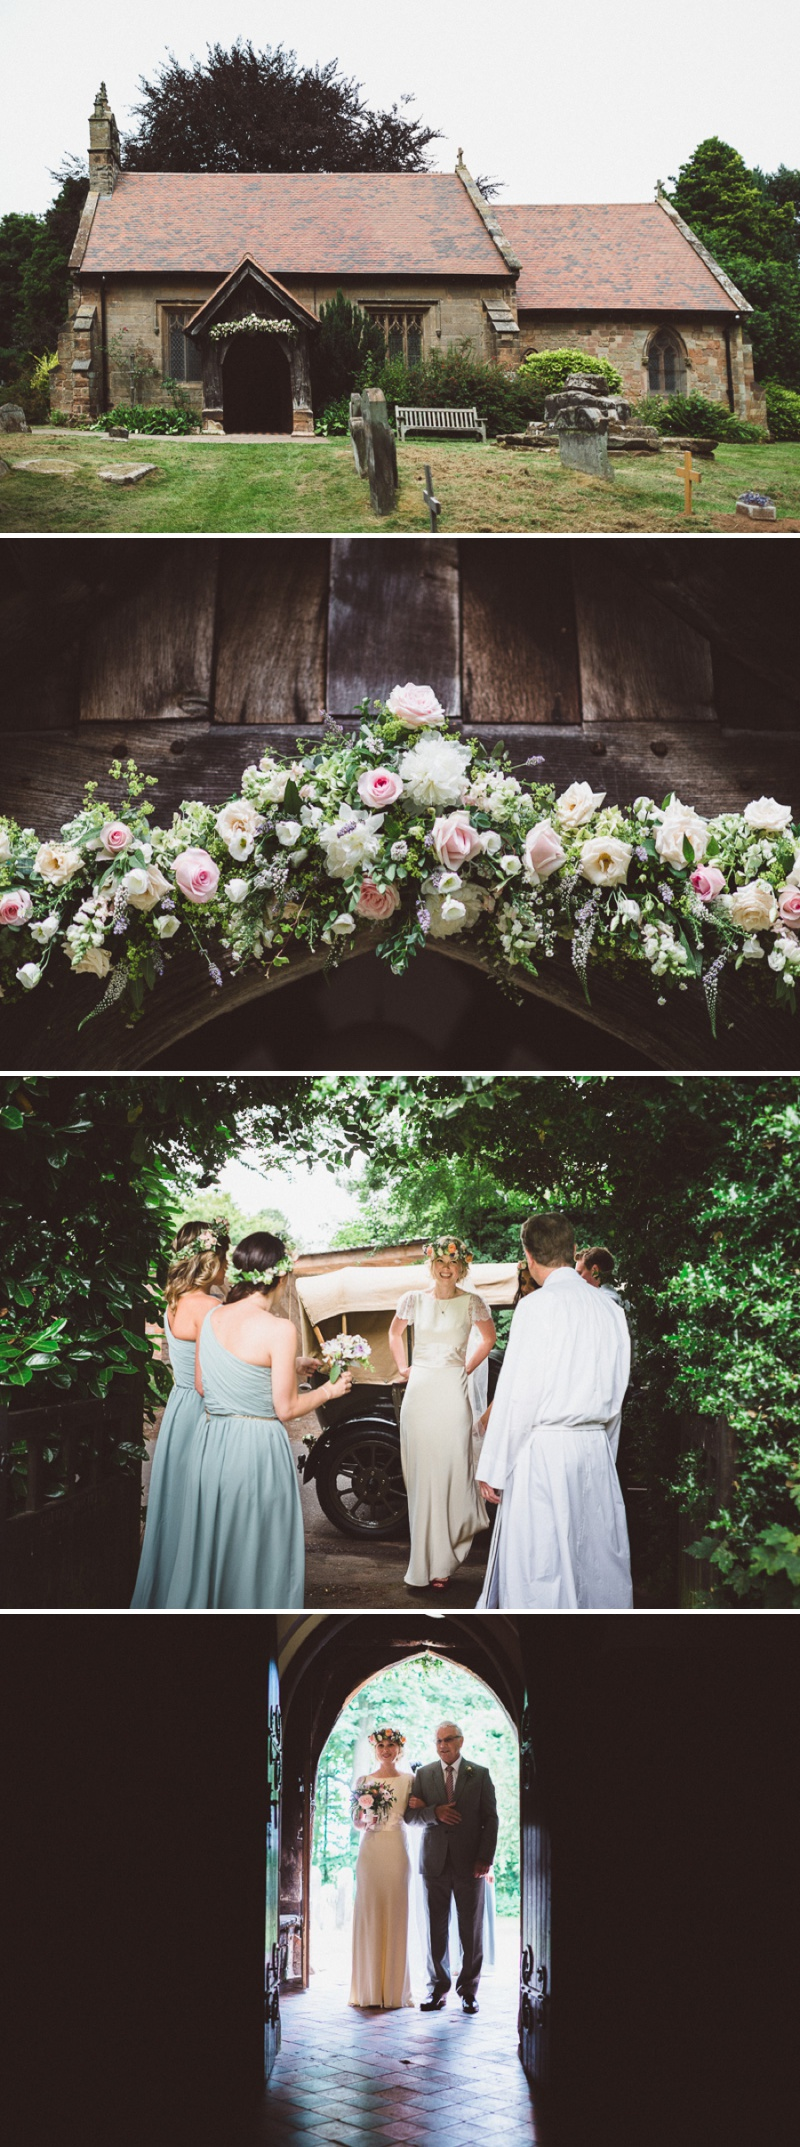 A Beautiful Bohemian Back Garden English Wedding With A Silk Charlie Brear Dress With Lace Cap Sleeves And Flower Crowns From Rhys Parker Photography._0008